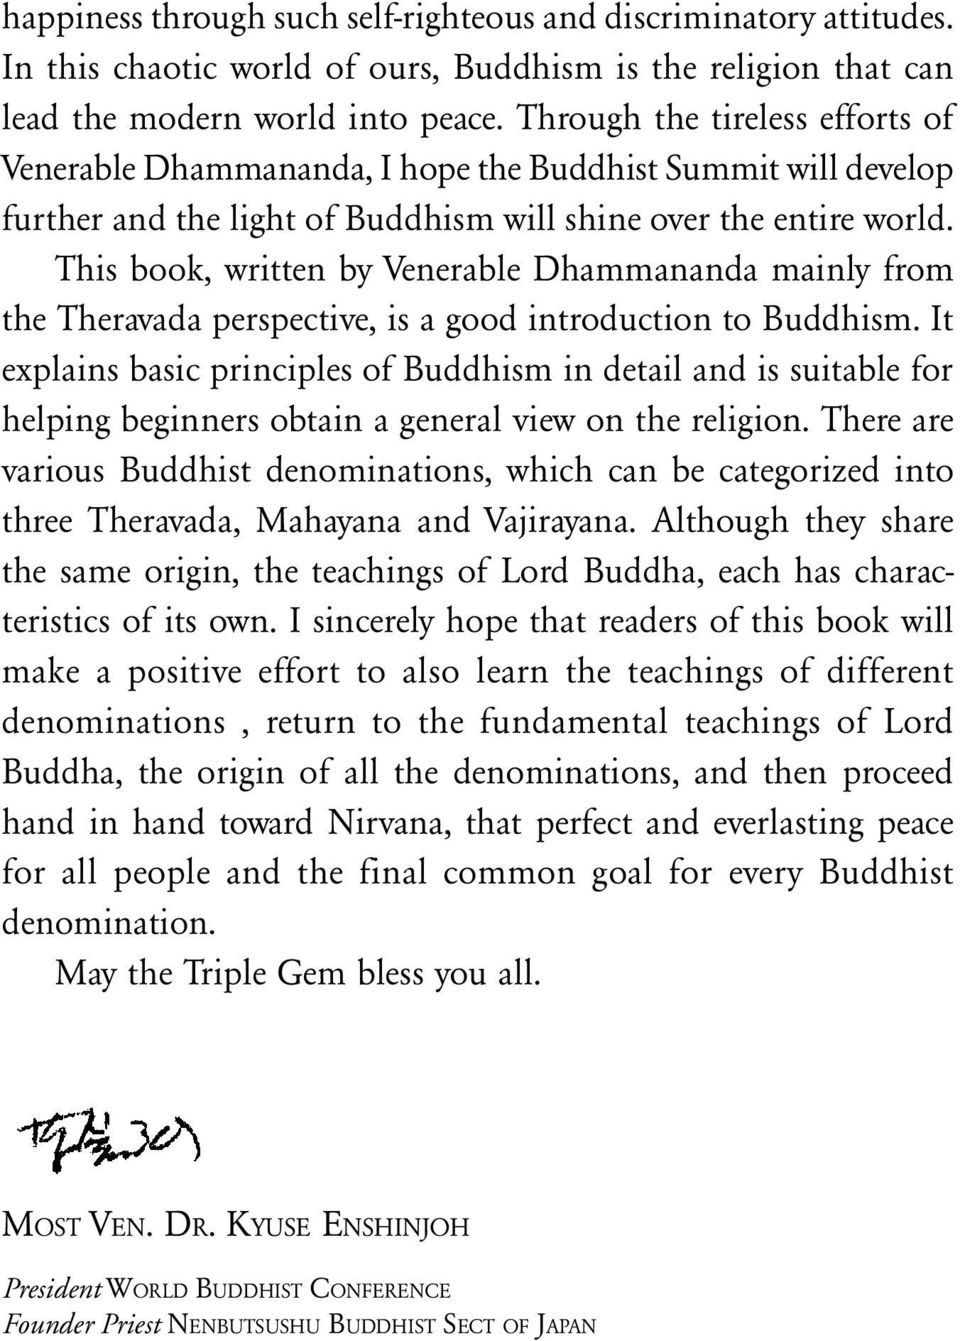 This book, written by Venerable Dhammananda mainly from the Theravada perspective, is a good introduction to Buddhism.